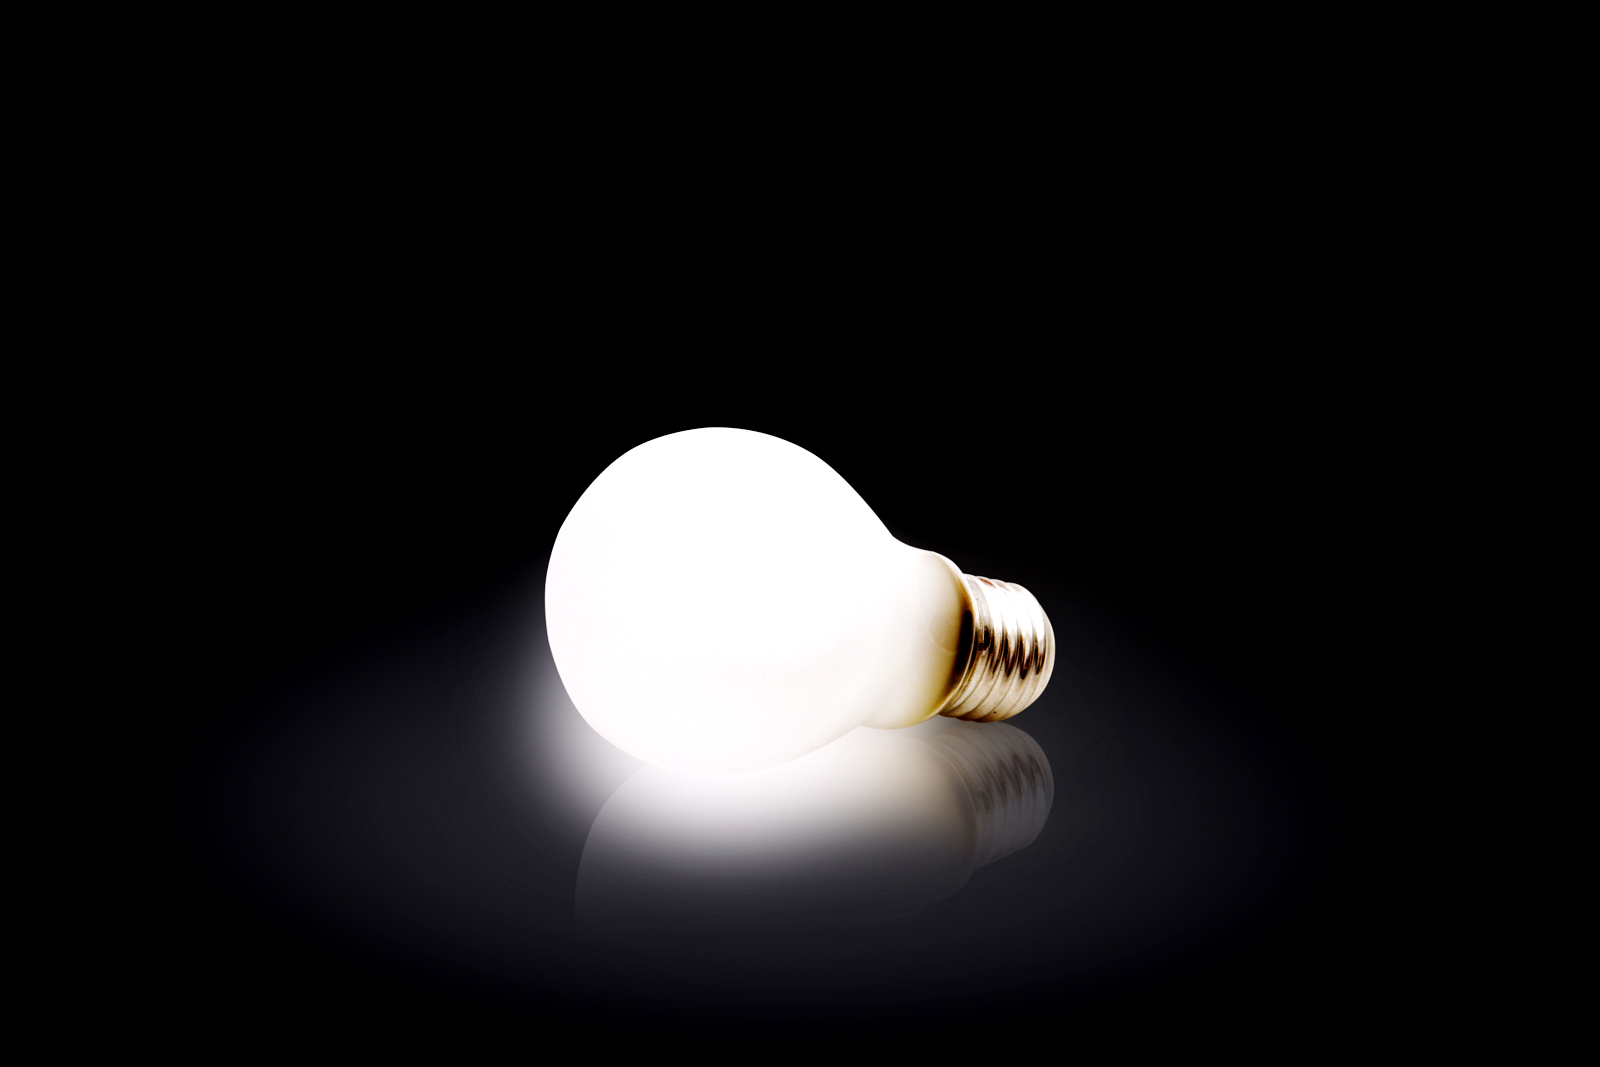 Free Download Light Bulb Hd Wallpapers Stock Photos Download